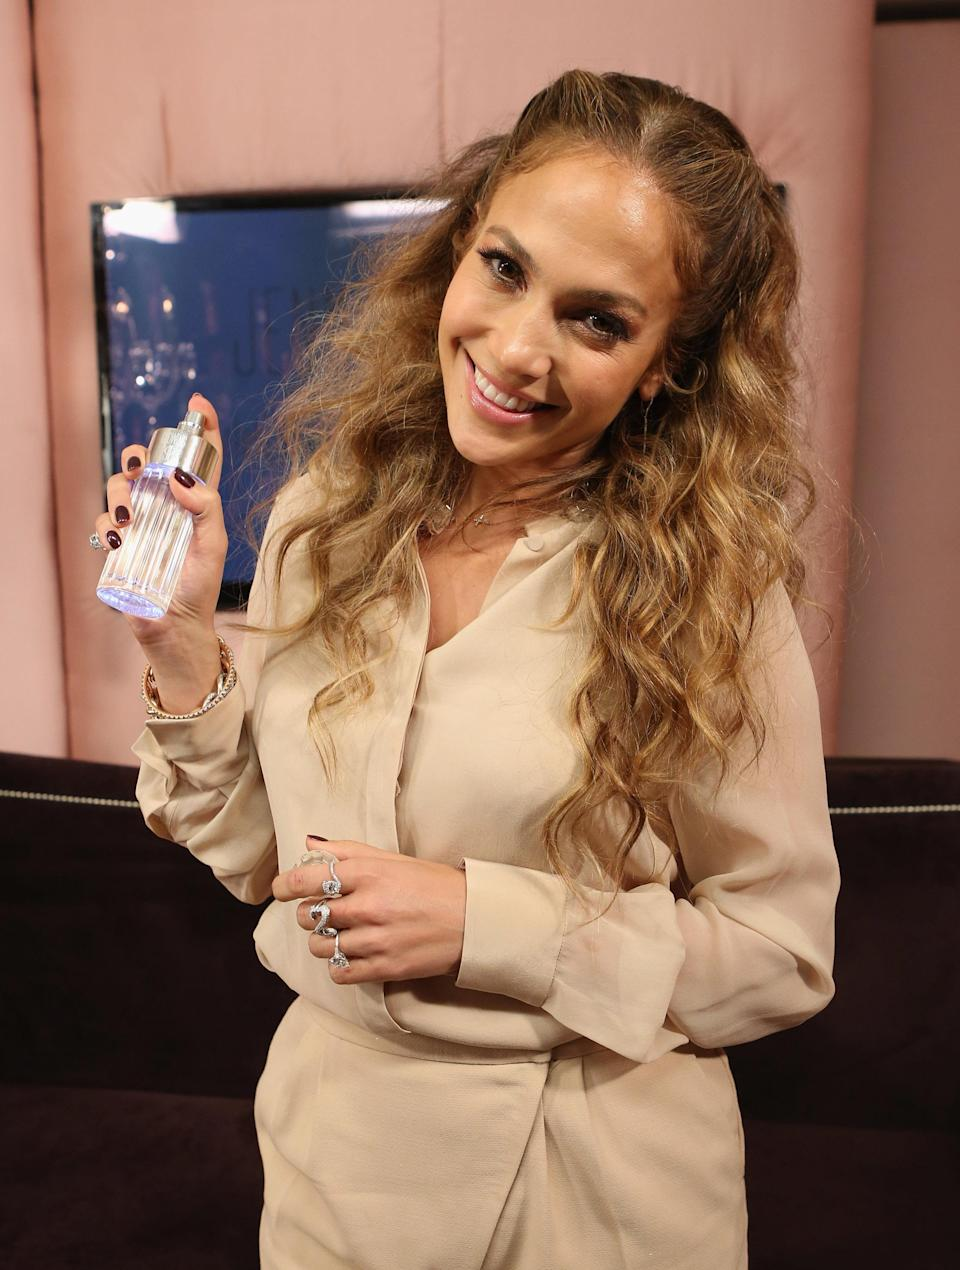 """<p>J Lo kickstarted the celebrity fragrance trend in 2004 with Glow. In its first year, the scent <a href=""""http://www.dailymail.co.uk/femail/article-2166625/Jennifer-Lopezs-perfume-sells-celebrity-fragrance.html"""" rel=""""nofollow noopener"""" target=""""_blank"""" data-ylk=""""slk:made £225 million"""" class=""""link rapid-noclick-resp"""">made £225 million</a> thanks to its star status and notes of orange, jasmine and grapefruit. 13 years later and Jennifer has capitalised on her success, launching over 20 perfumes, netting almost £1.5 billion.<br><i>[Photo: Getty]</i> </p>"""